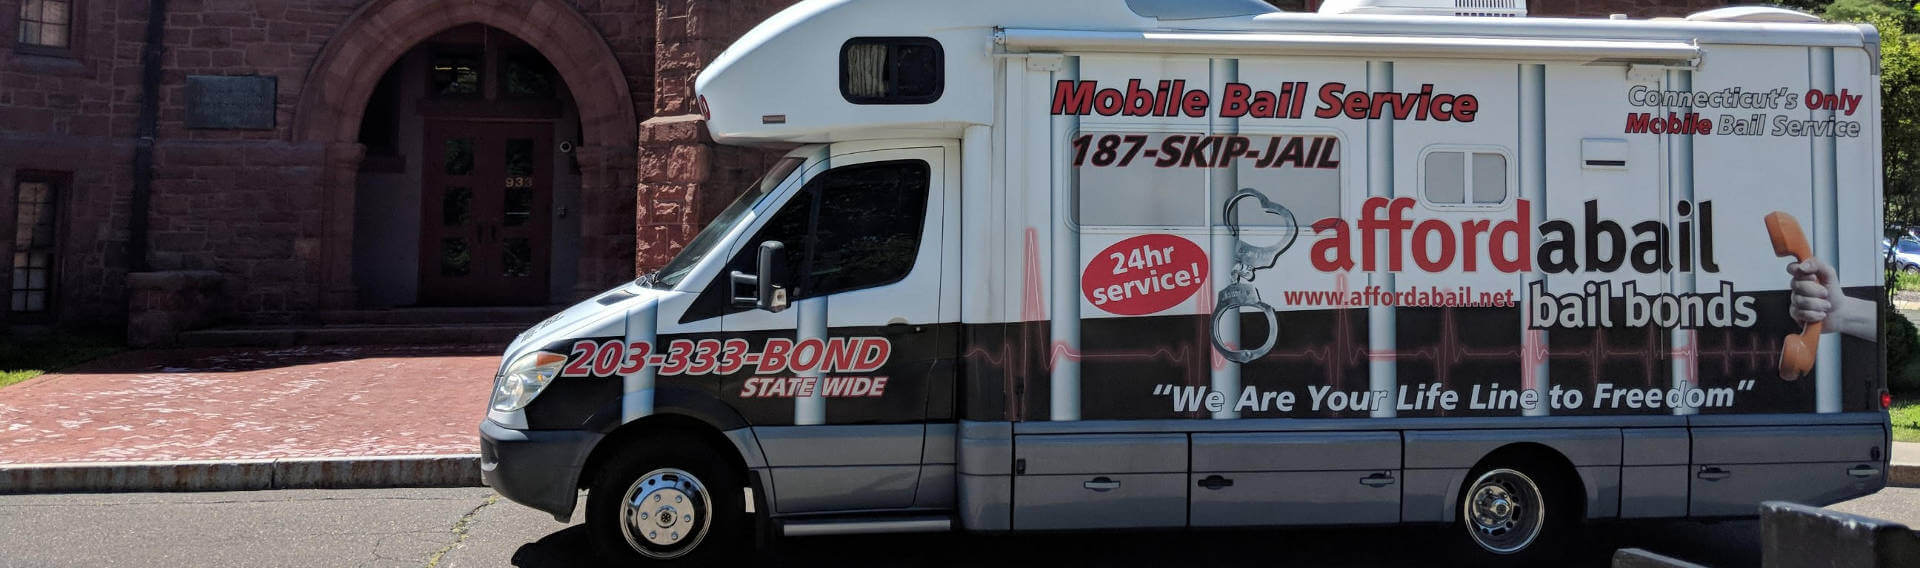 Mobile bail bonds service in Naugatuck CT